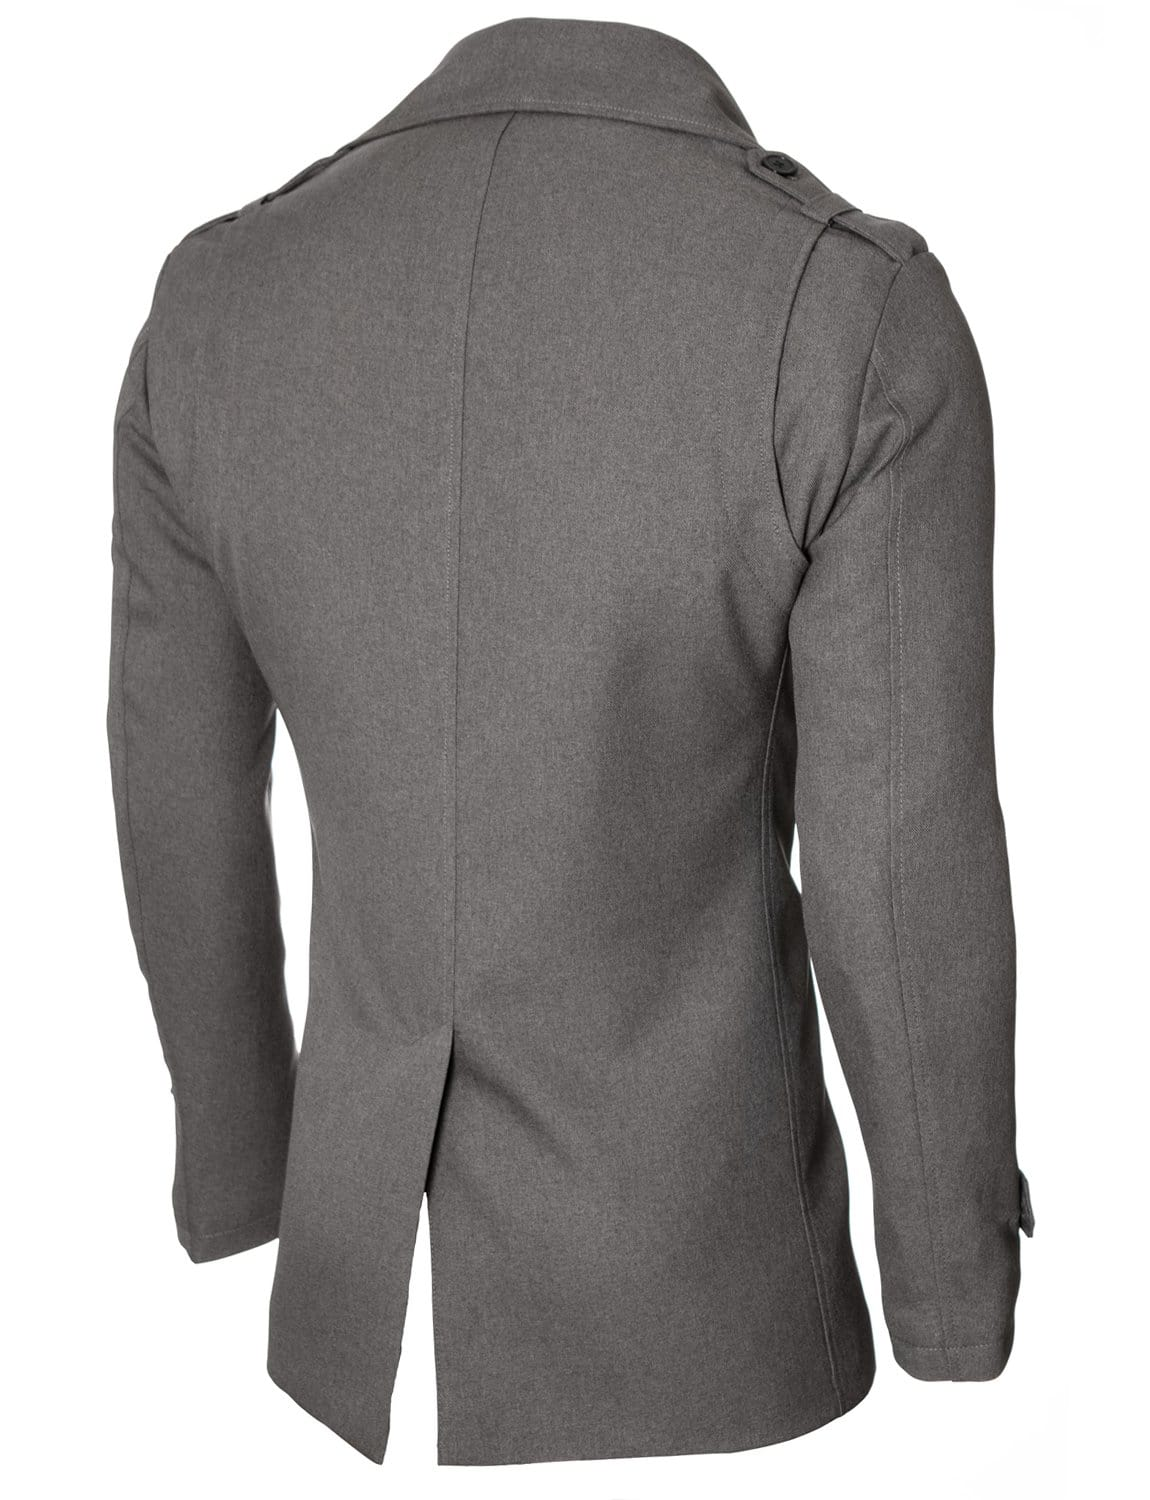 Mens slim fit double-breasted winter coat gray (MOD13538C)